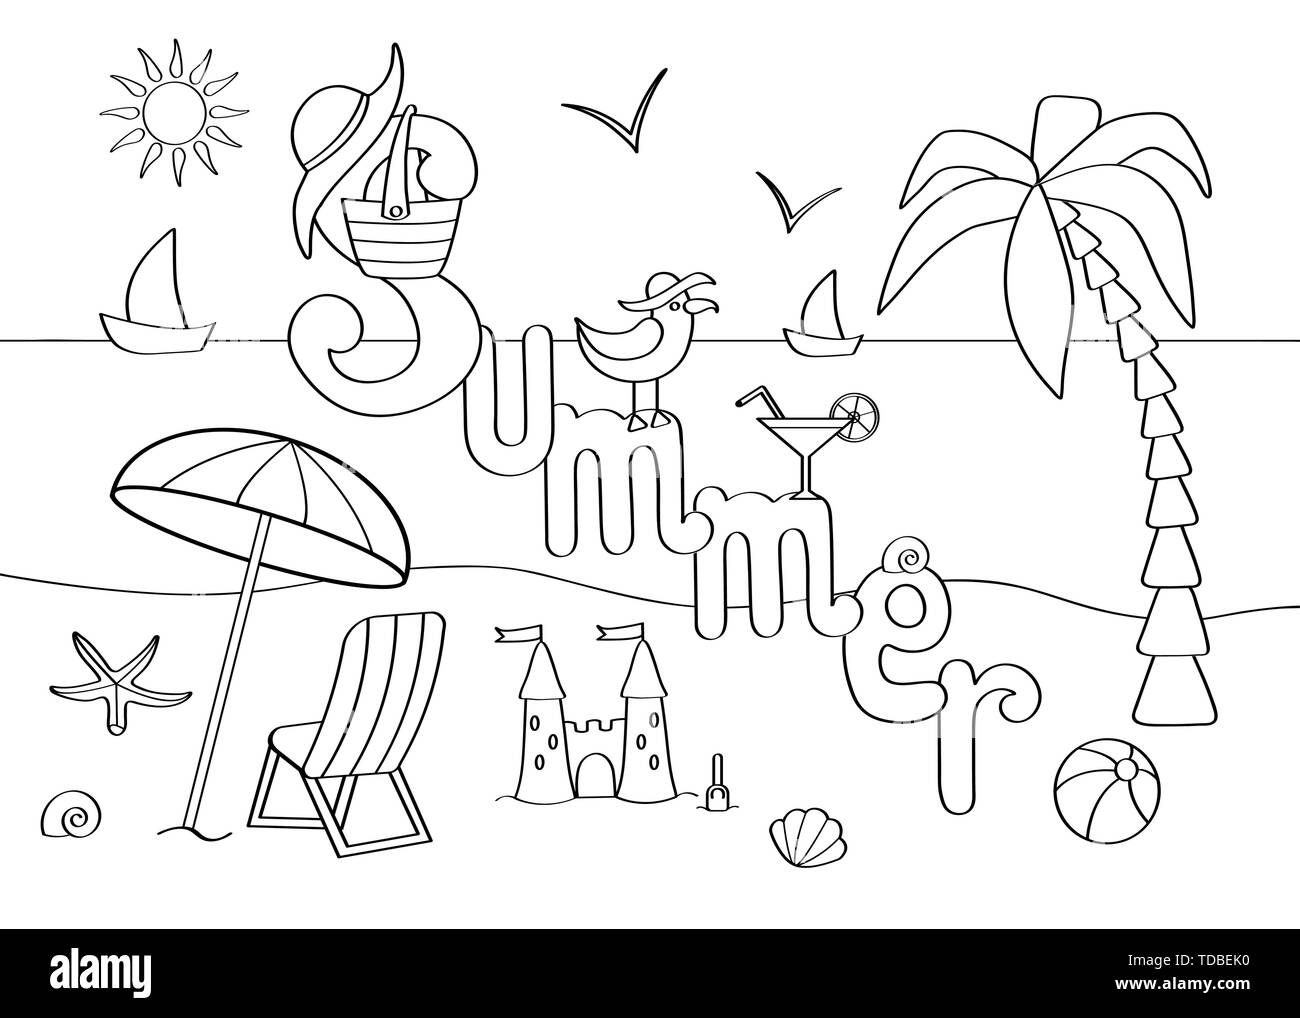 Abstract coloring page on the theme of summer vacation at sea, for